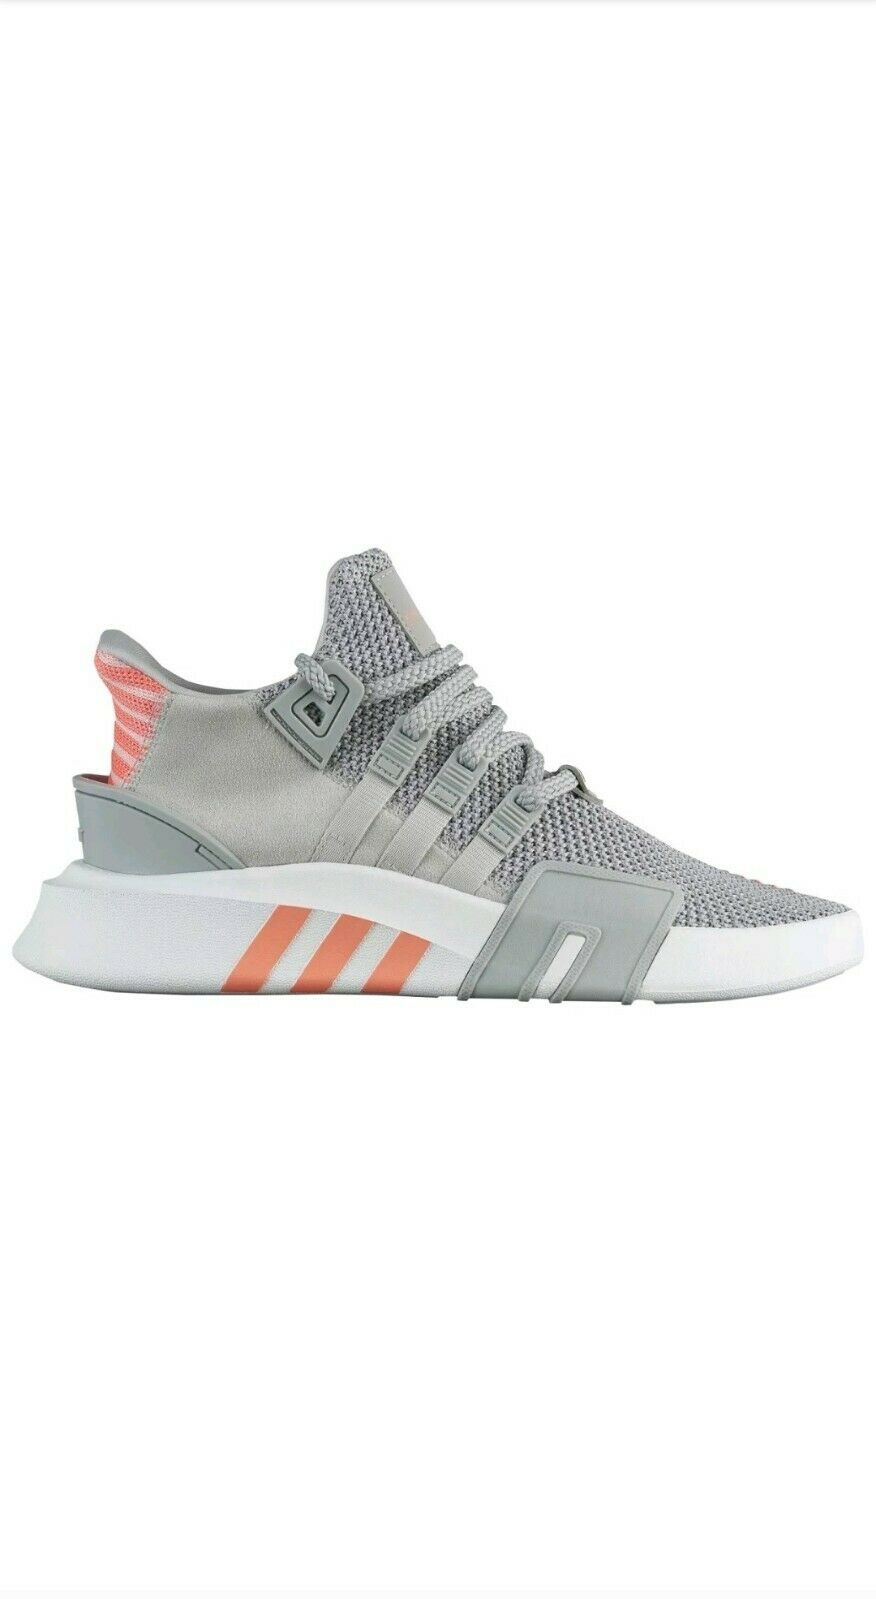 WOMENS ADIDAS ORIGINALS EQT BASKETBALL ADV SZ 7 GREY WHITE CORAL AC7351